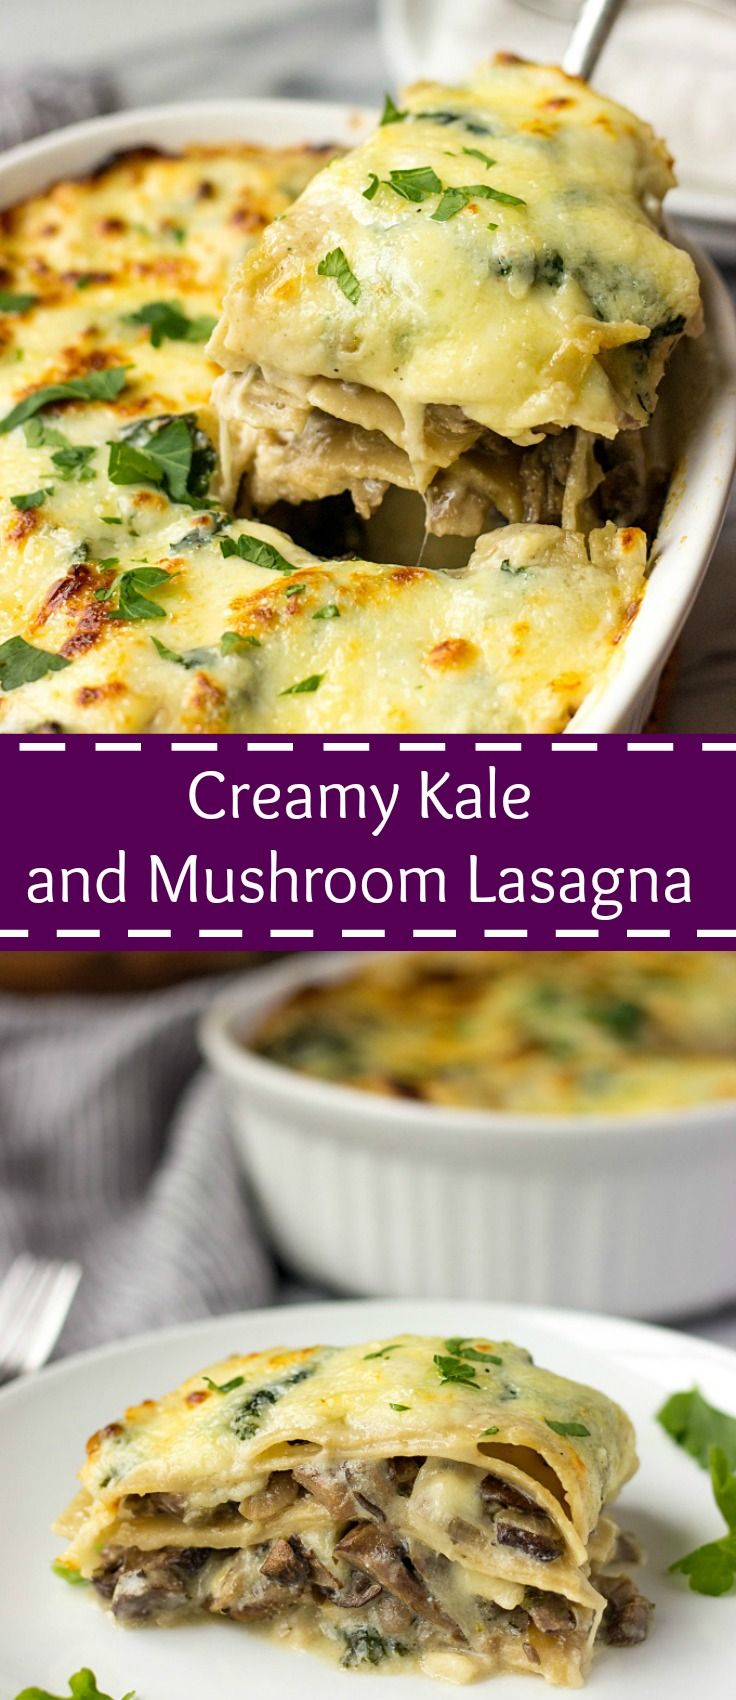 25+ best ideas about Mushroom lasagna on Pinterest ...